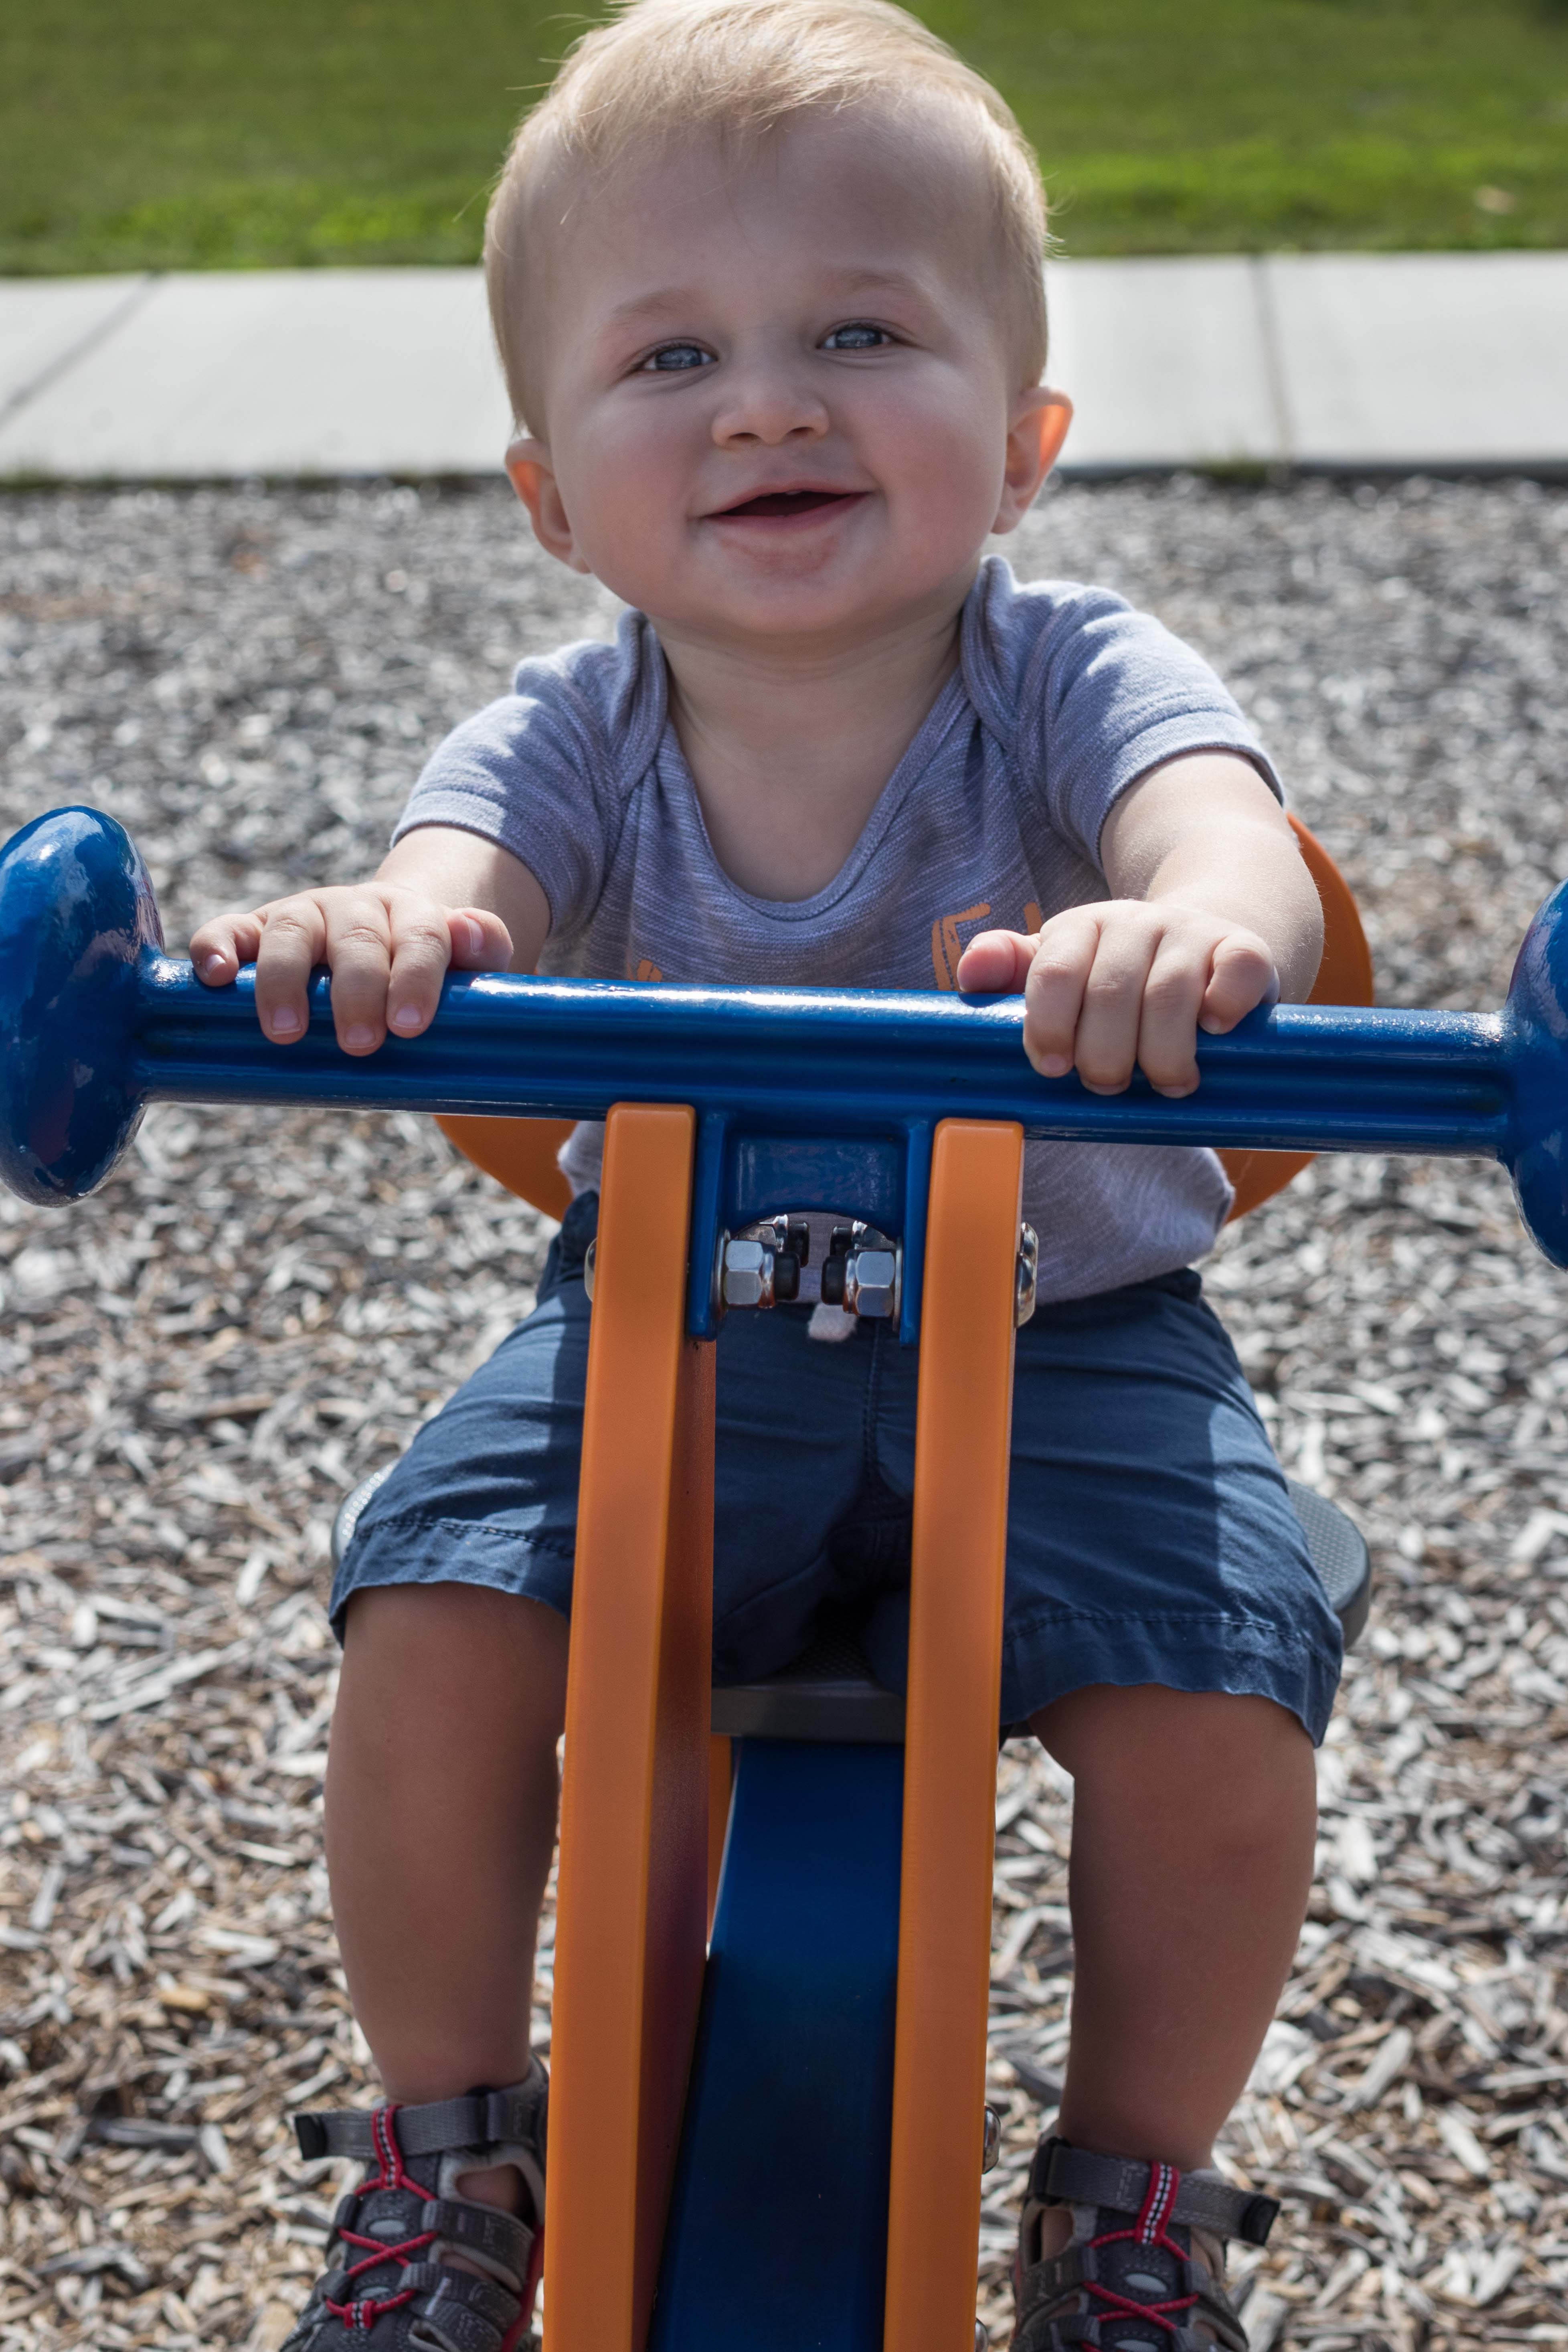 Tommy at the Playground Early October 2018 | https://www.roseclearfield.com